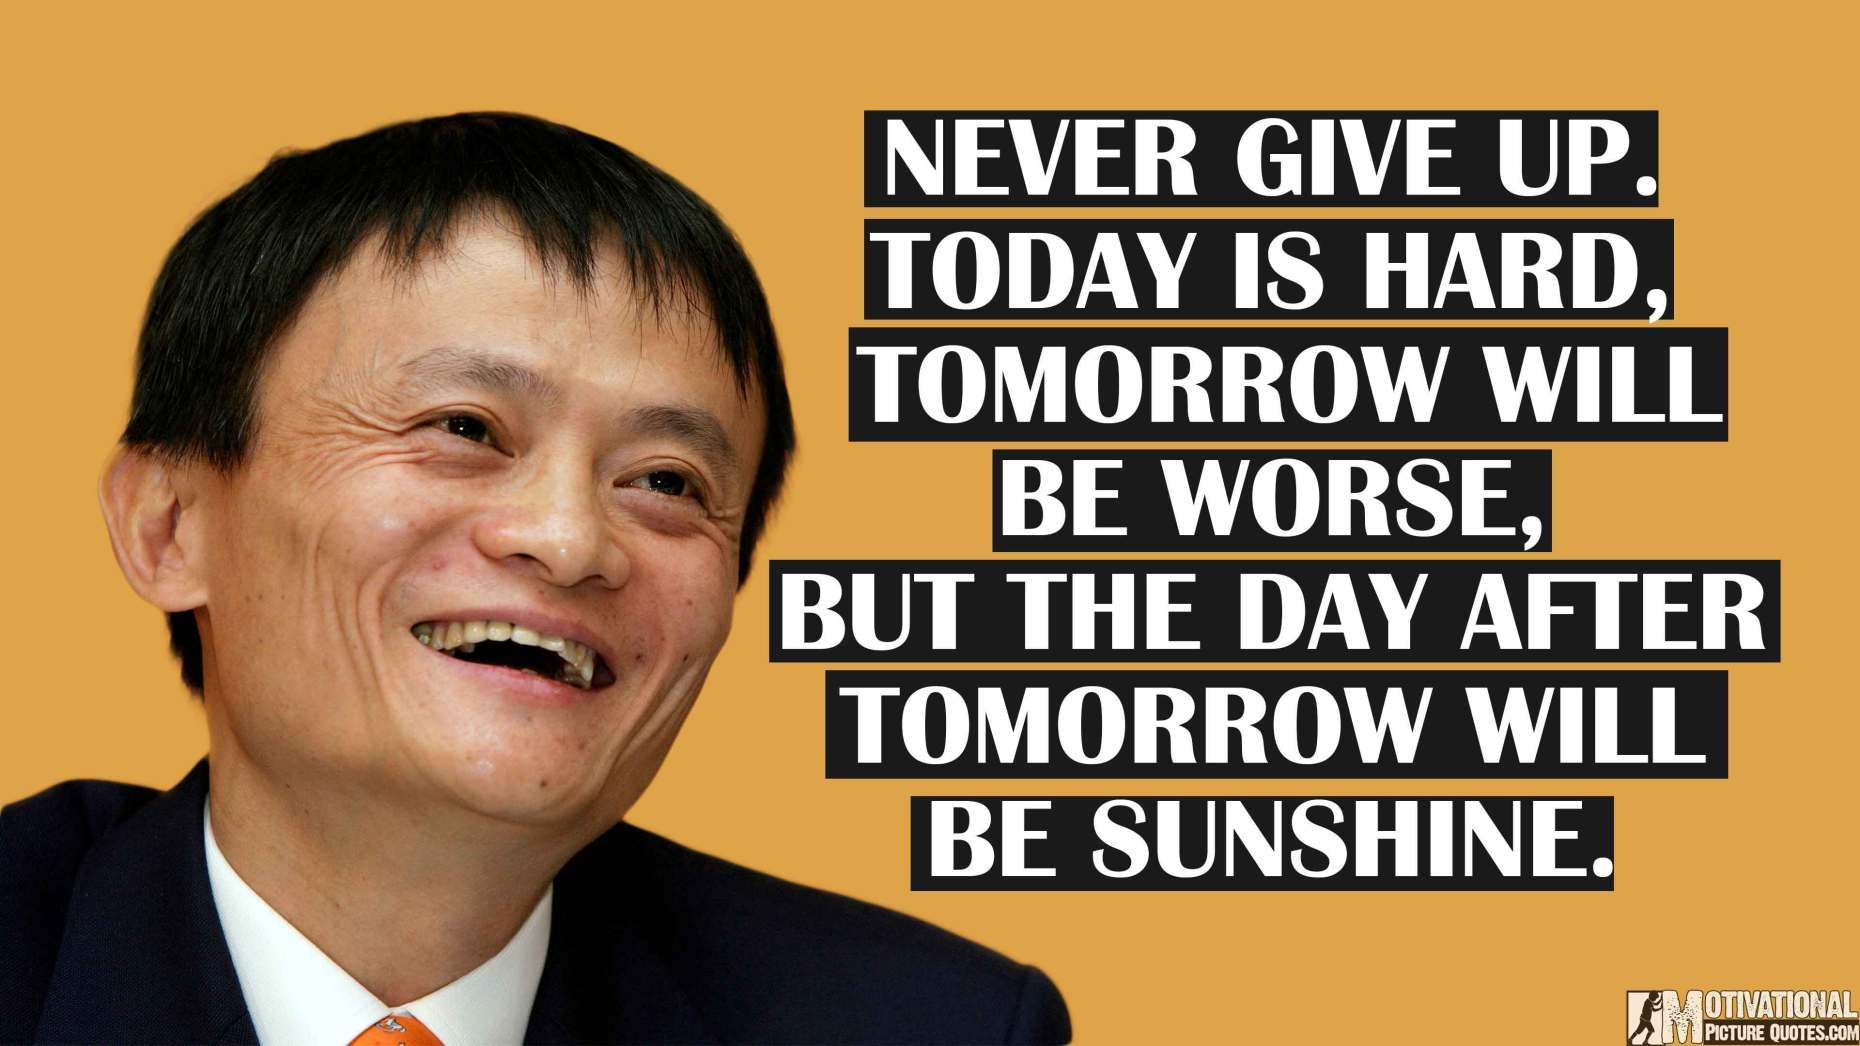 Today we see alot of motivational stories, but Jack Ma's